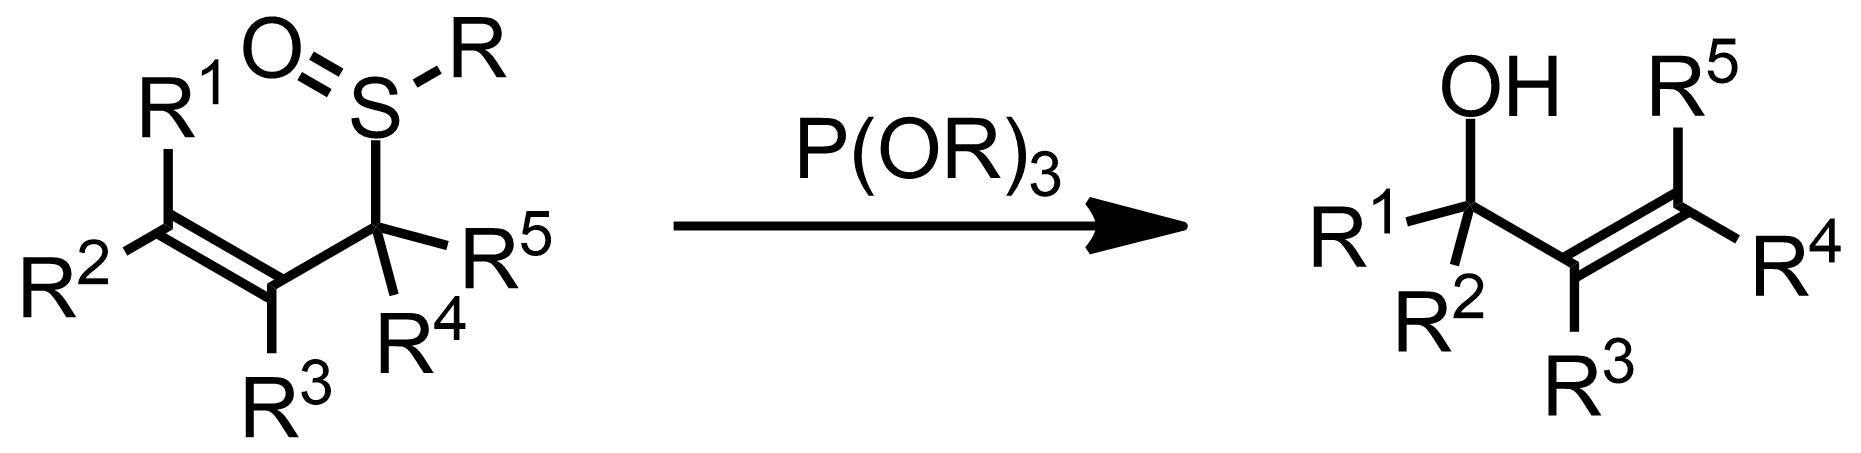 Schematic representation of the Evans-Mislow Rearrangement.